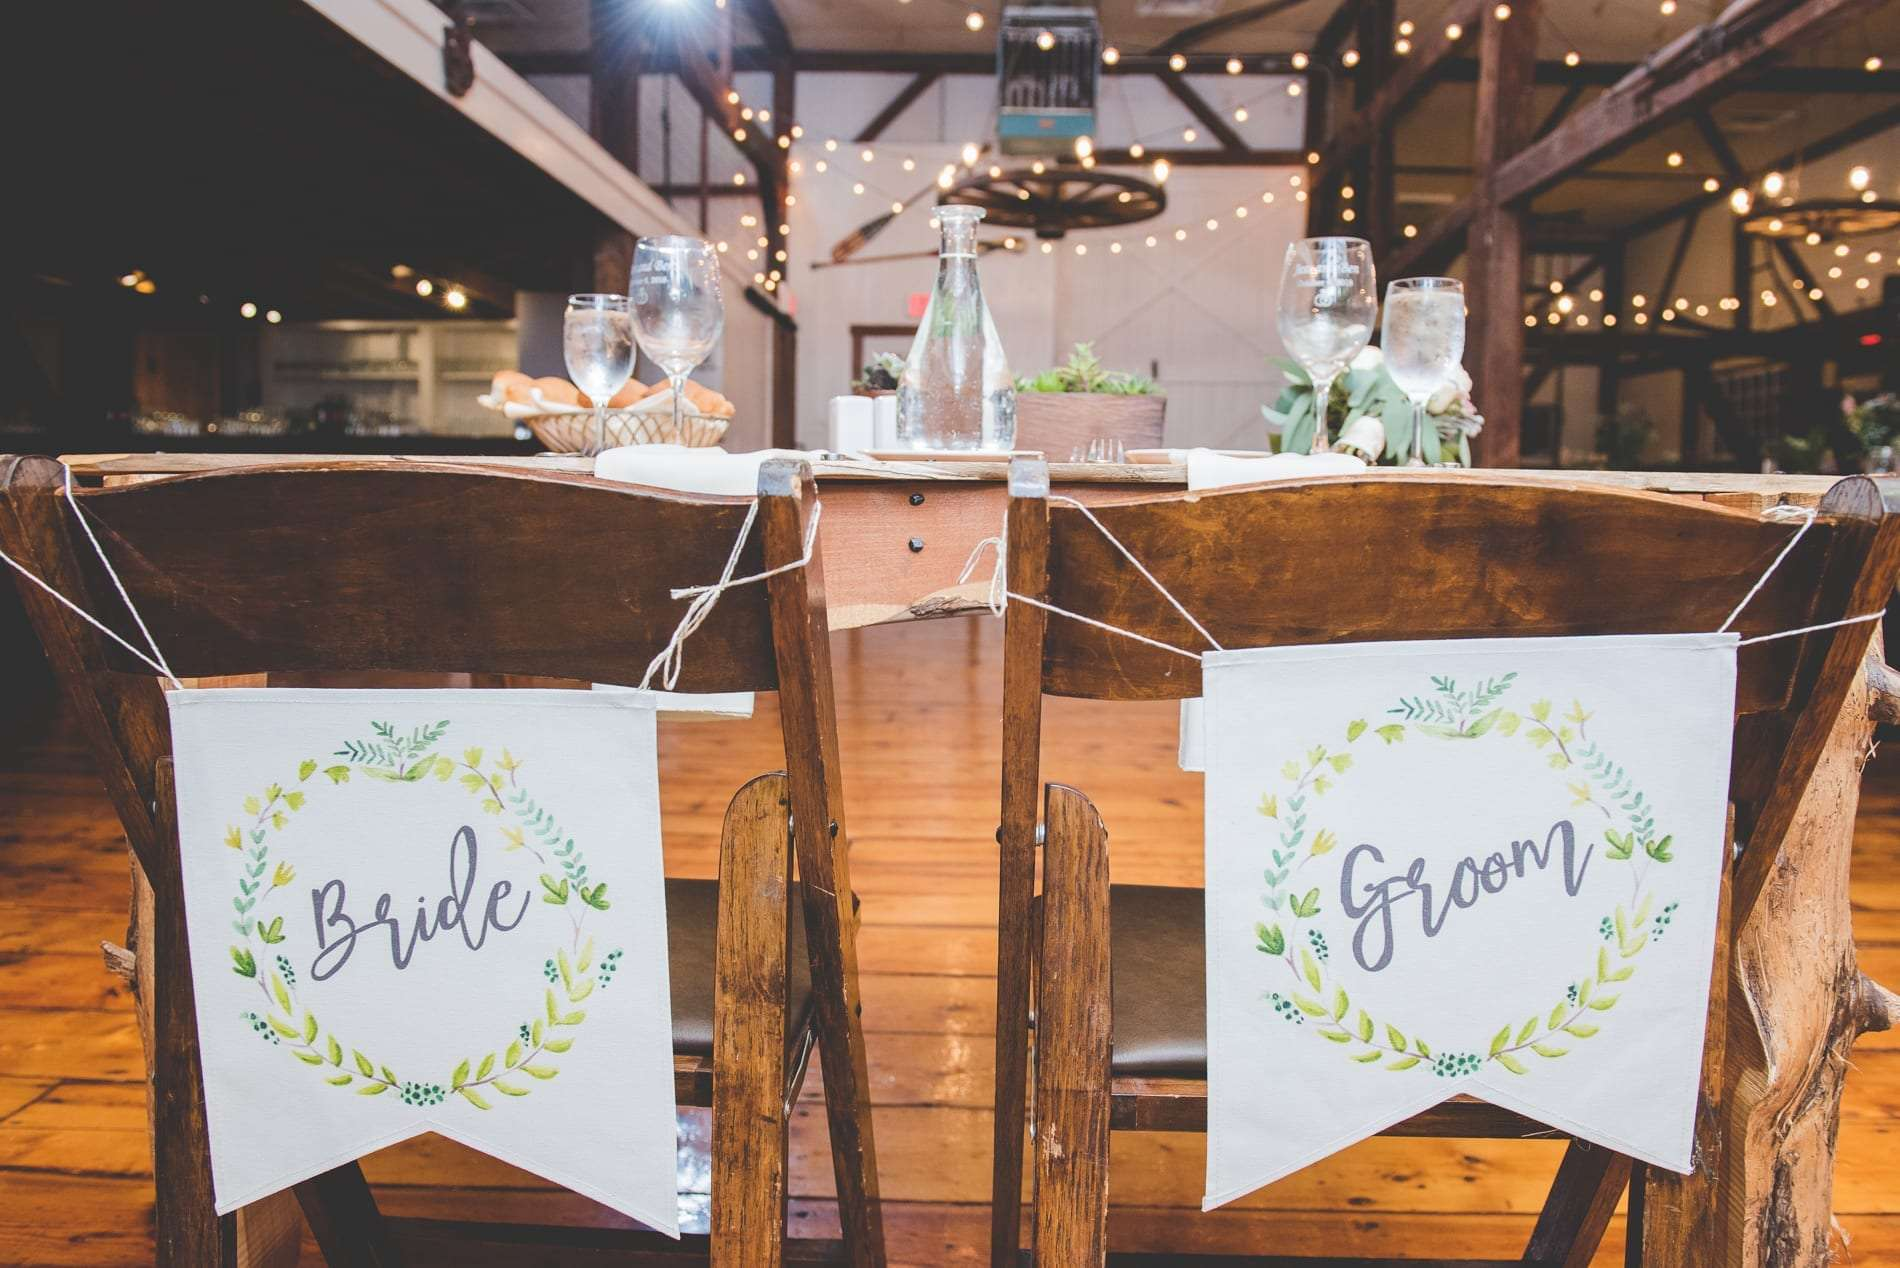 Bride and groom signs for chairs